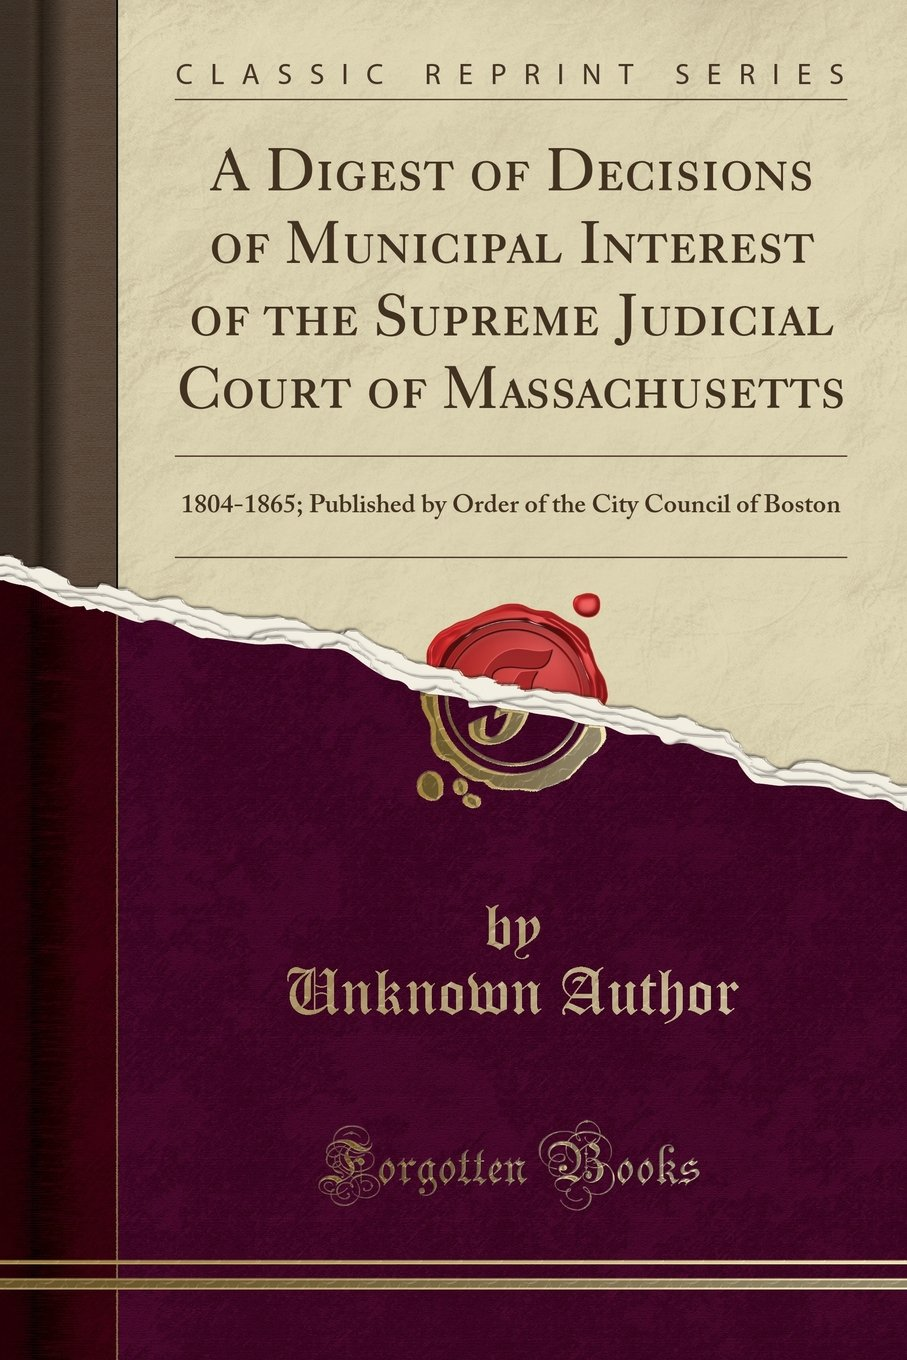 A Digest of Decisions of Municipal Interest of the Supreme Judicial Court of Massachusetts: 1804-1865; Published by Order of the City Council of Boston (Classic Reprint) PDF